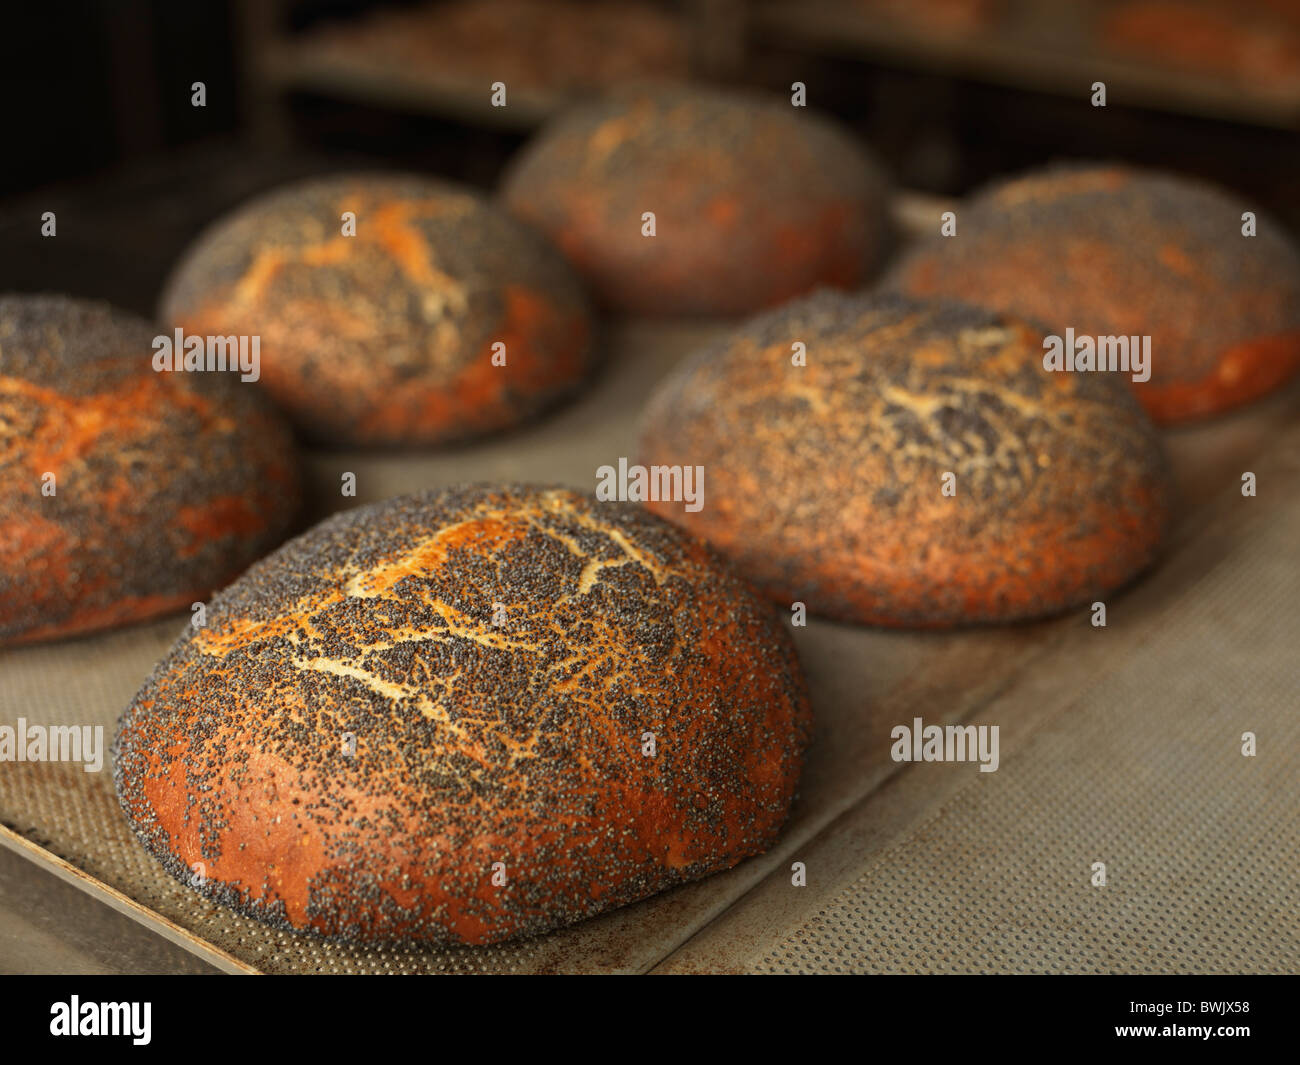 Several freshly baked round bread loaves on a baking tray - Stock Image